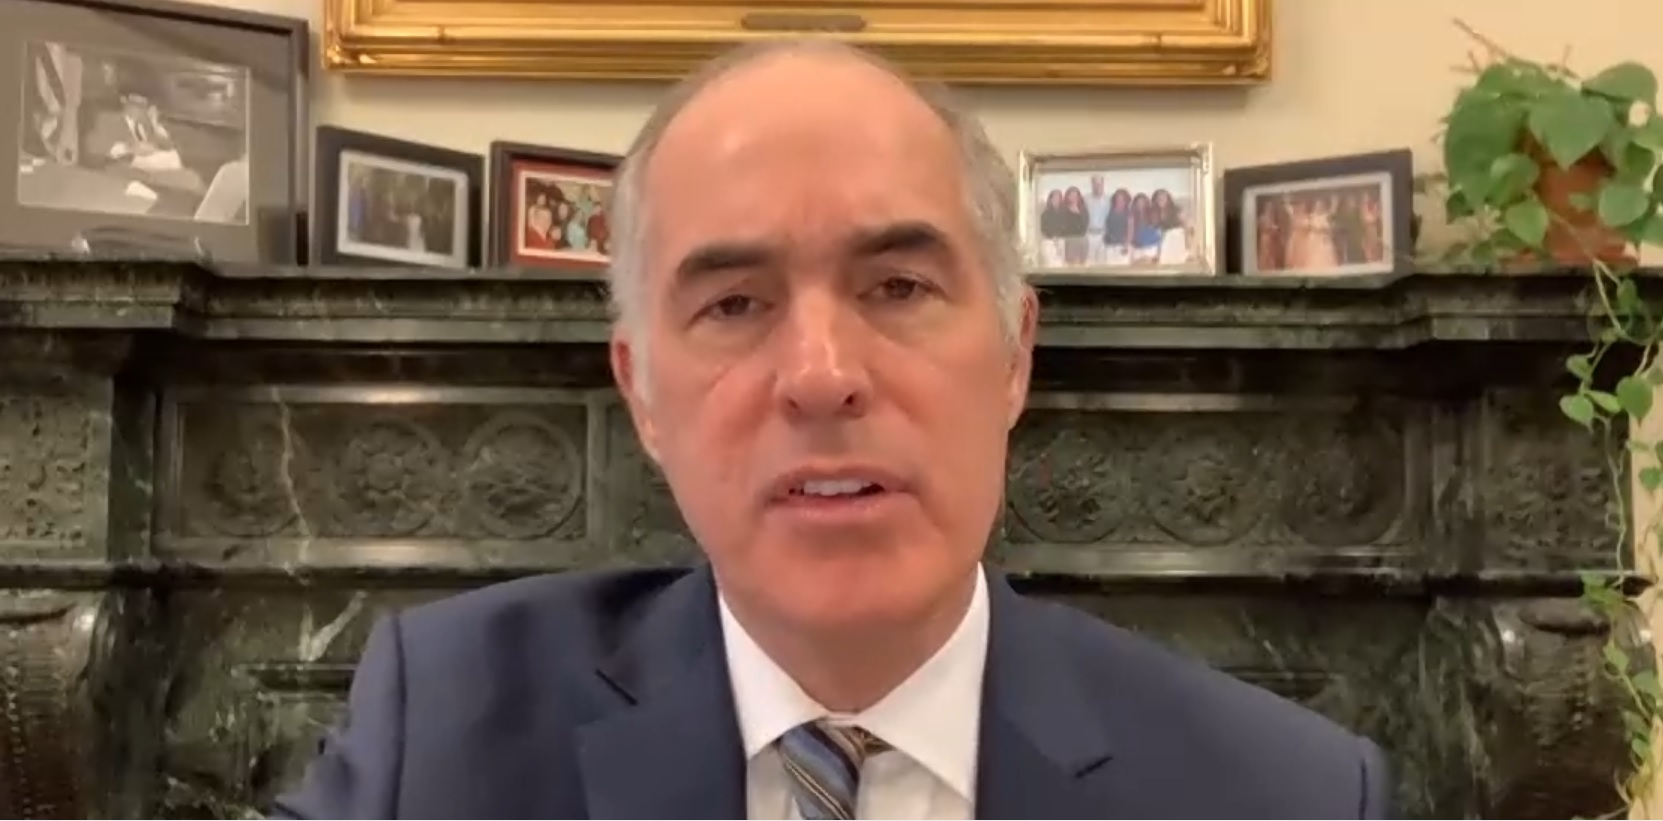 U.S. Sen. Bob Casey, D-Pa., speaks during a virtual press roundtable on Wednesday, Dec. 9, 2020.